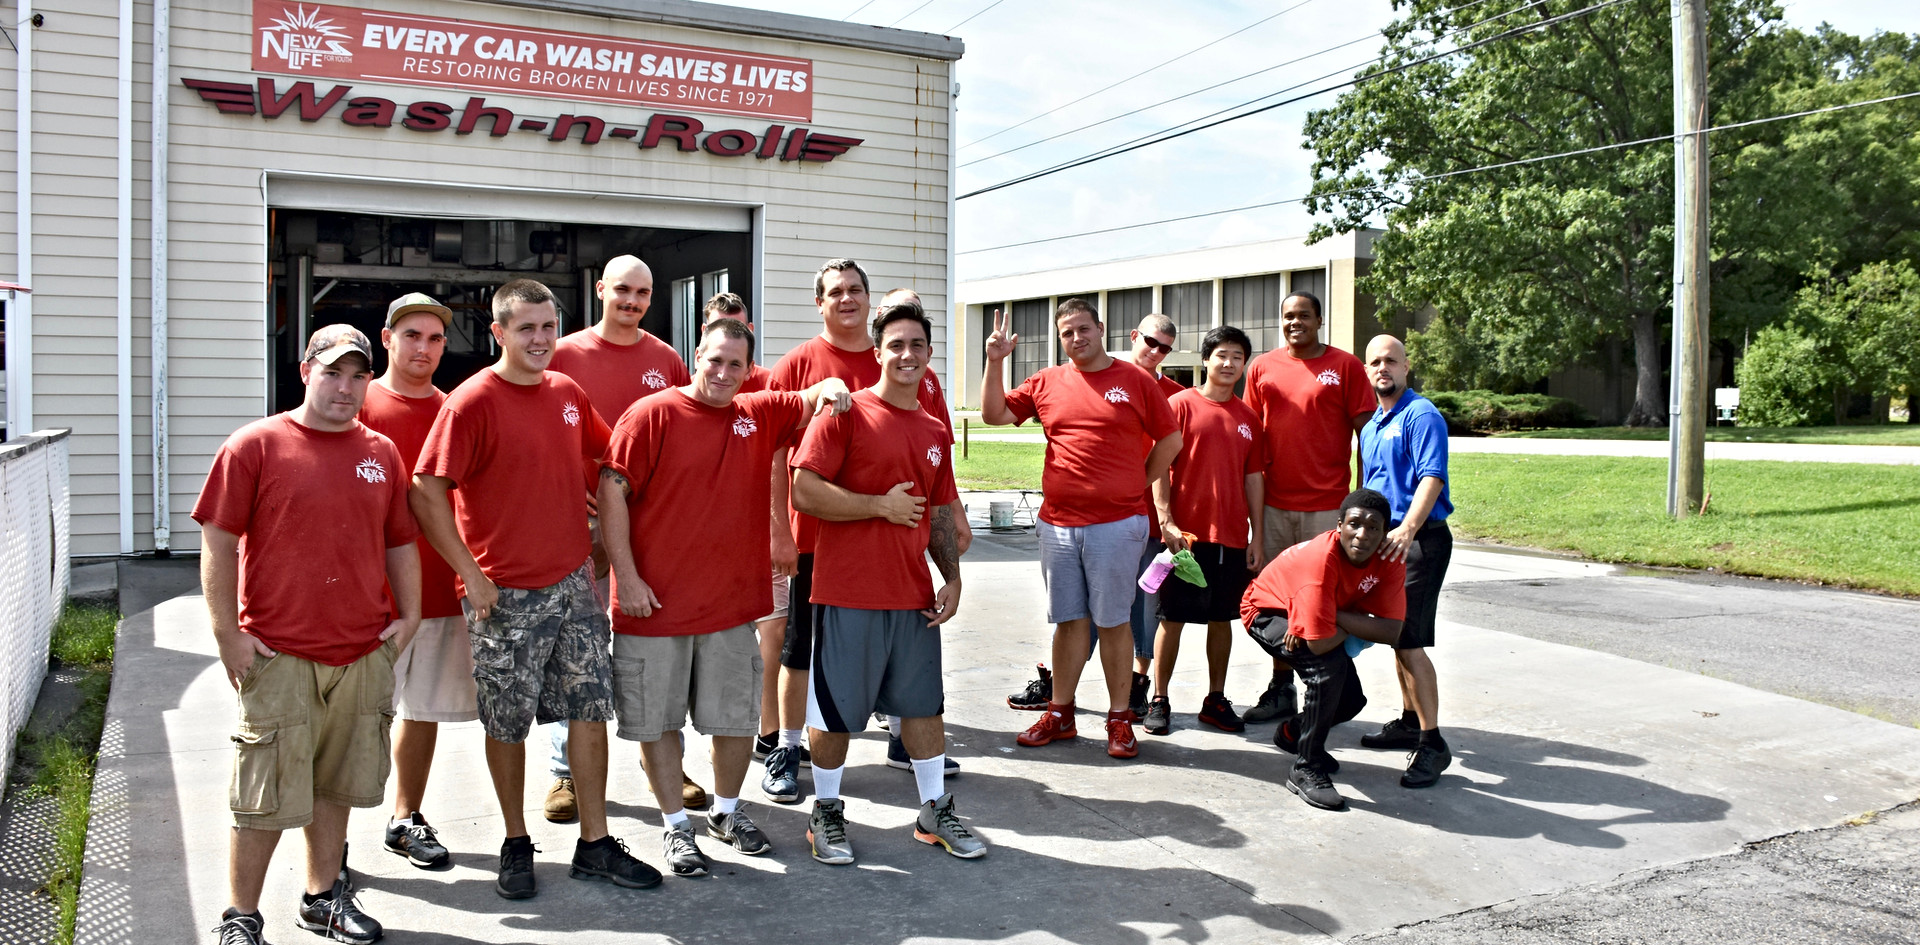 car wash group nlfy 2016.jpg